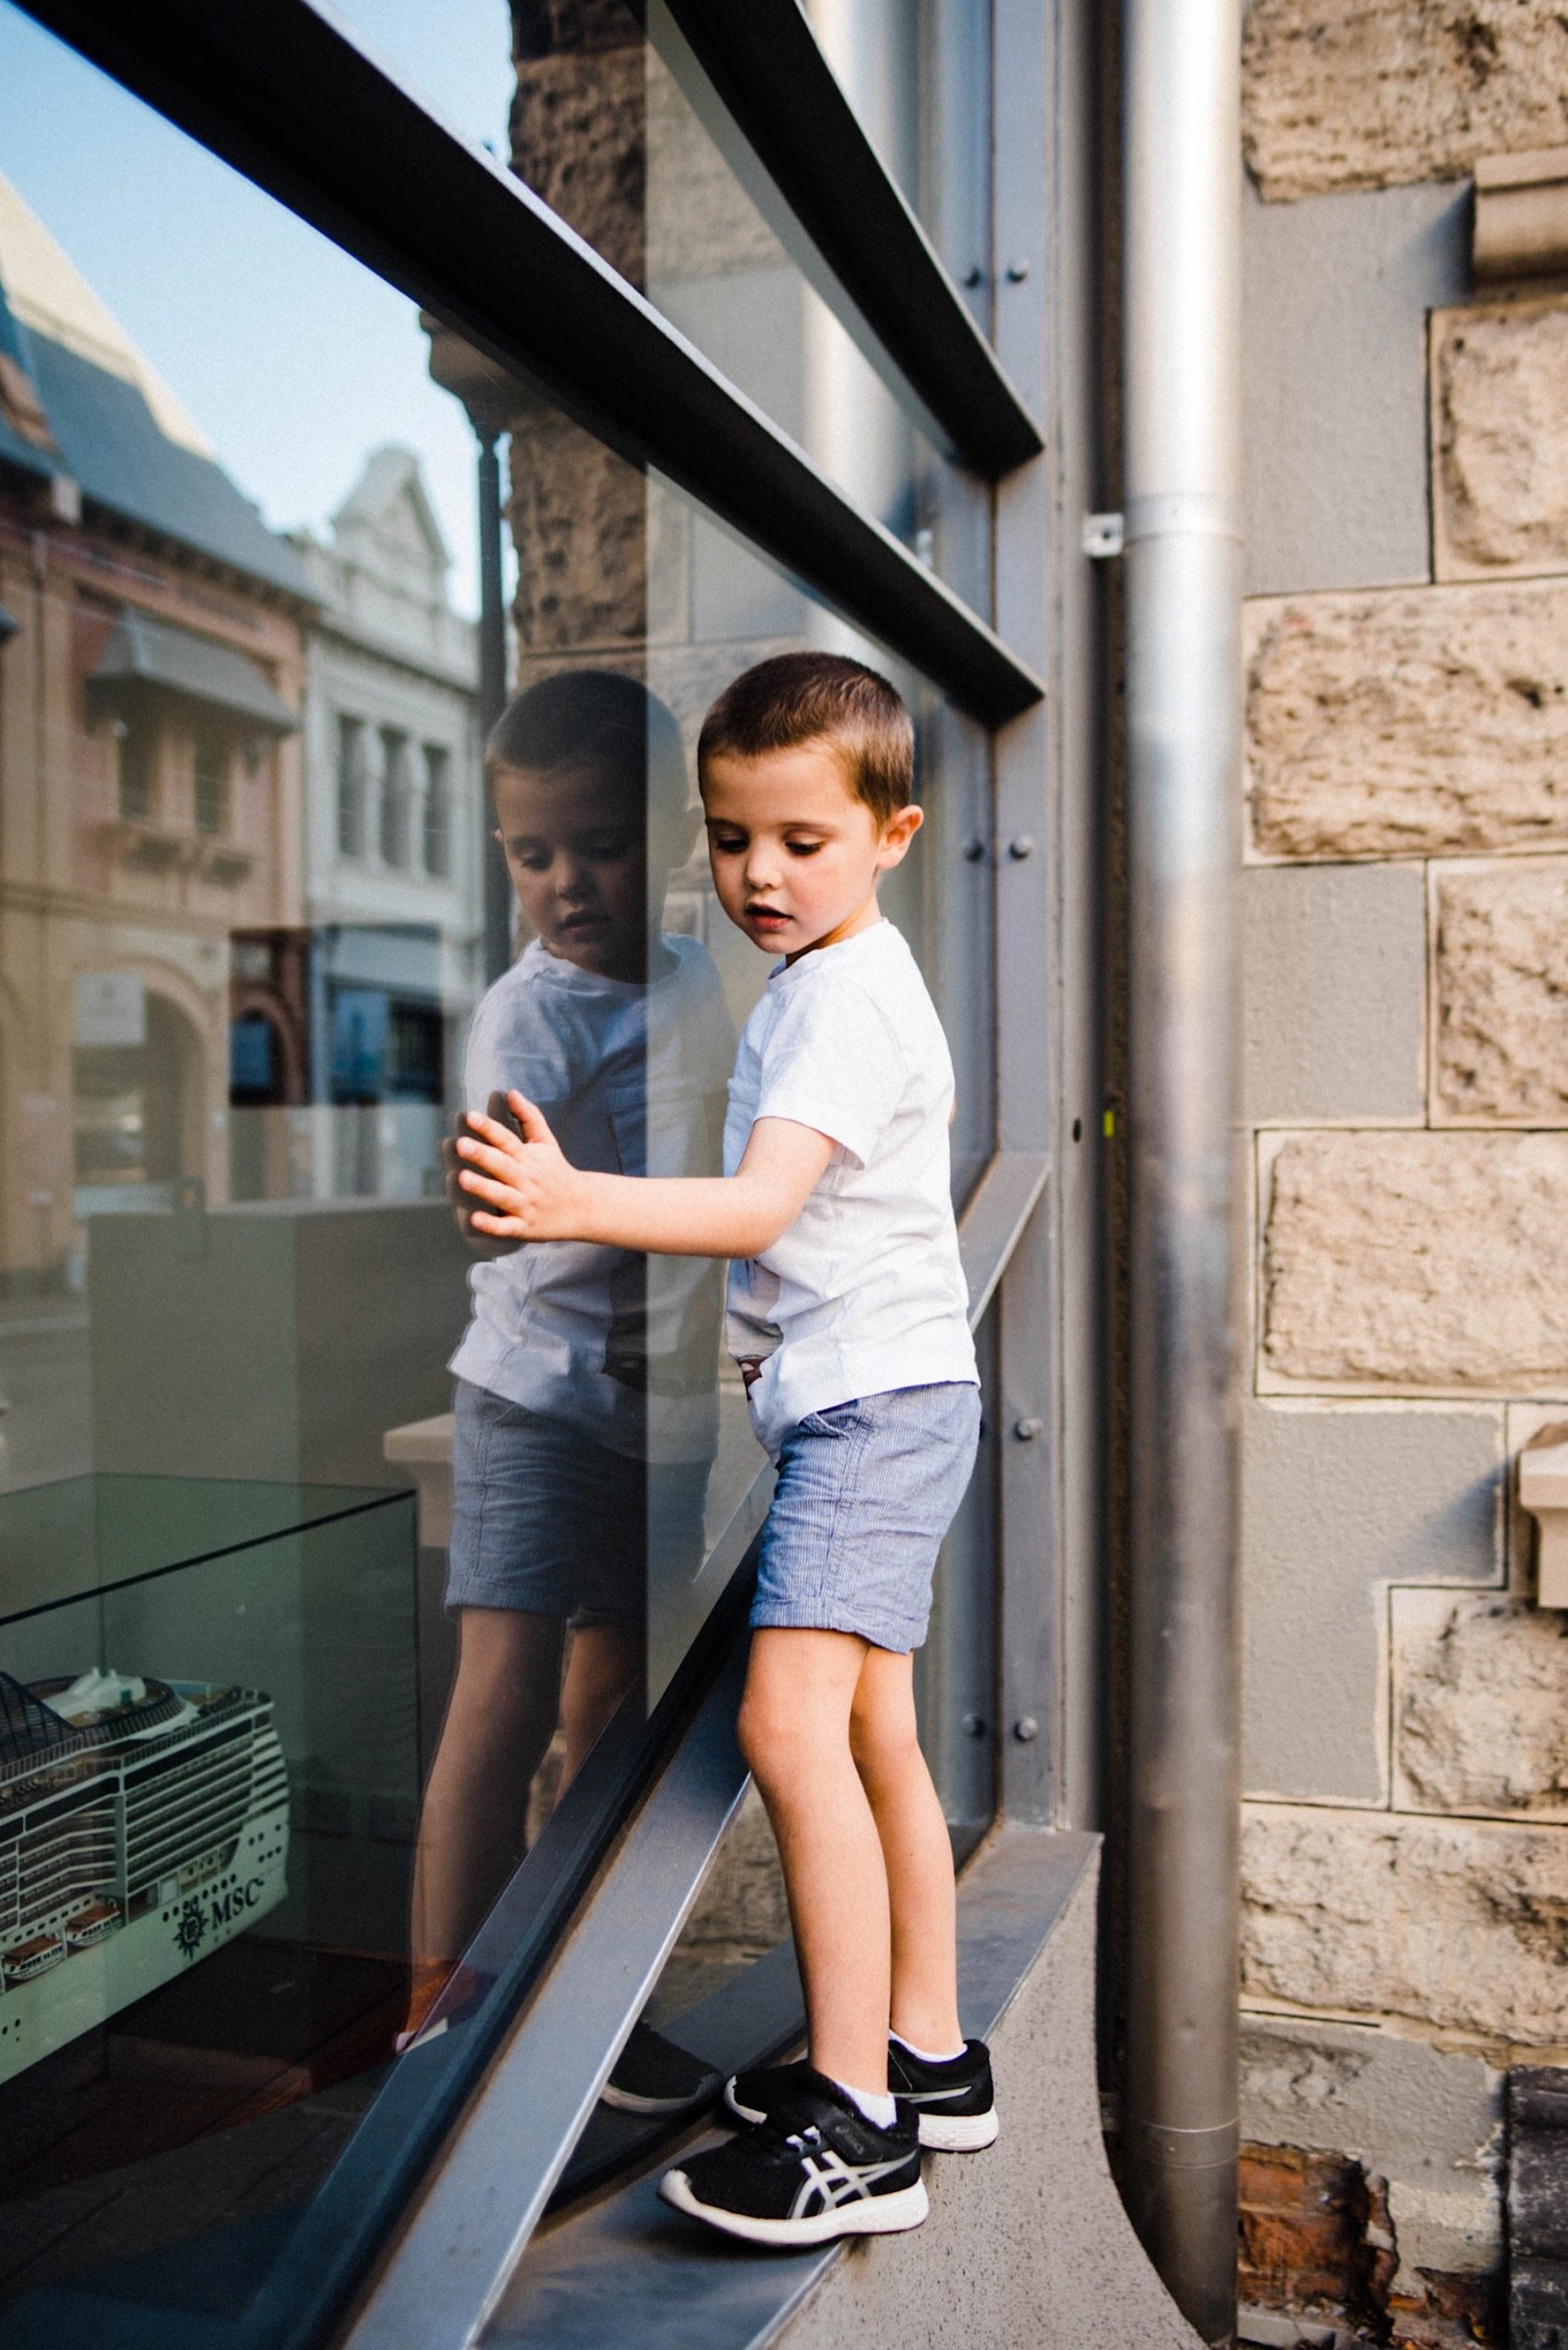 Candid Fremantle Family Photography of a child climbing the metal beams that line a big glass window. His reflection is mirrored in the window.